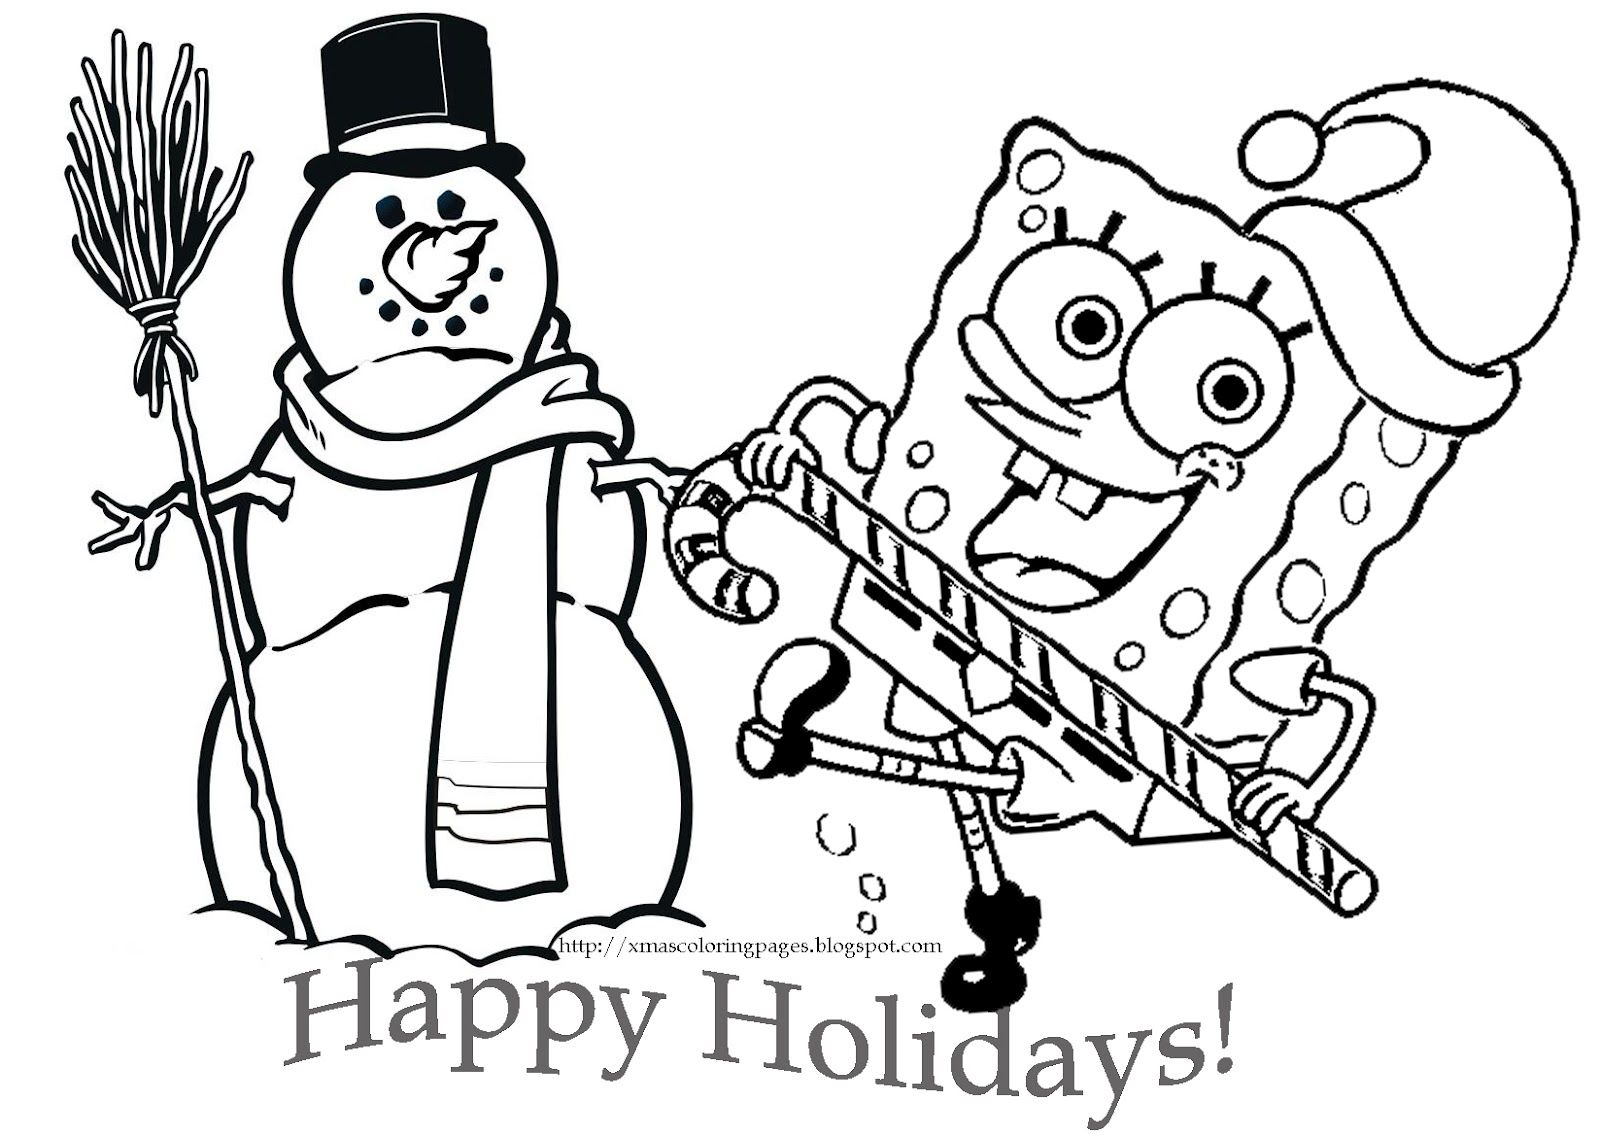 coloring pages online spongebob : Spongebob Coloring Book Spongebob Squarepants Christmas Coloring Page That Shows Spongebob